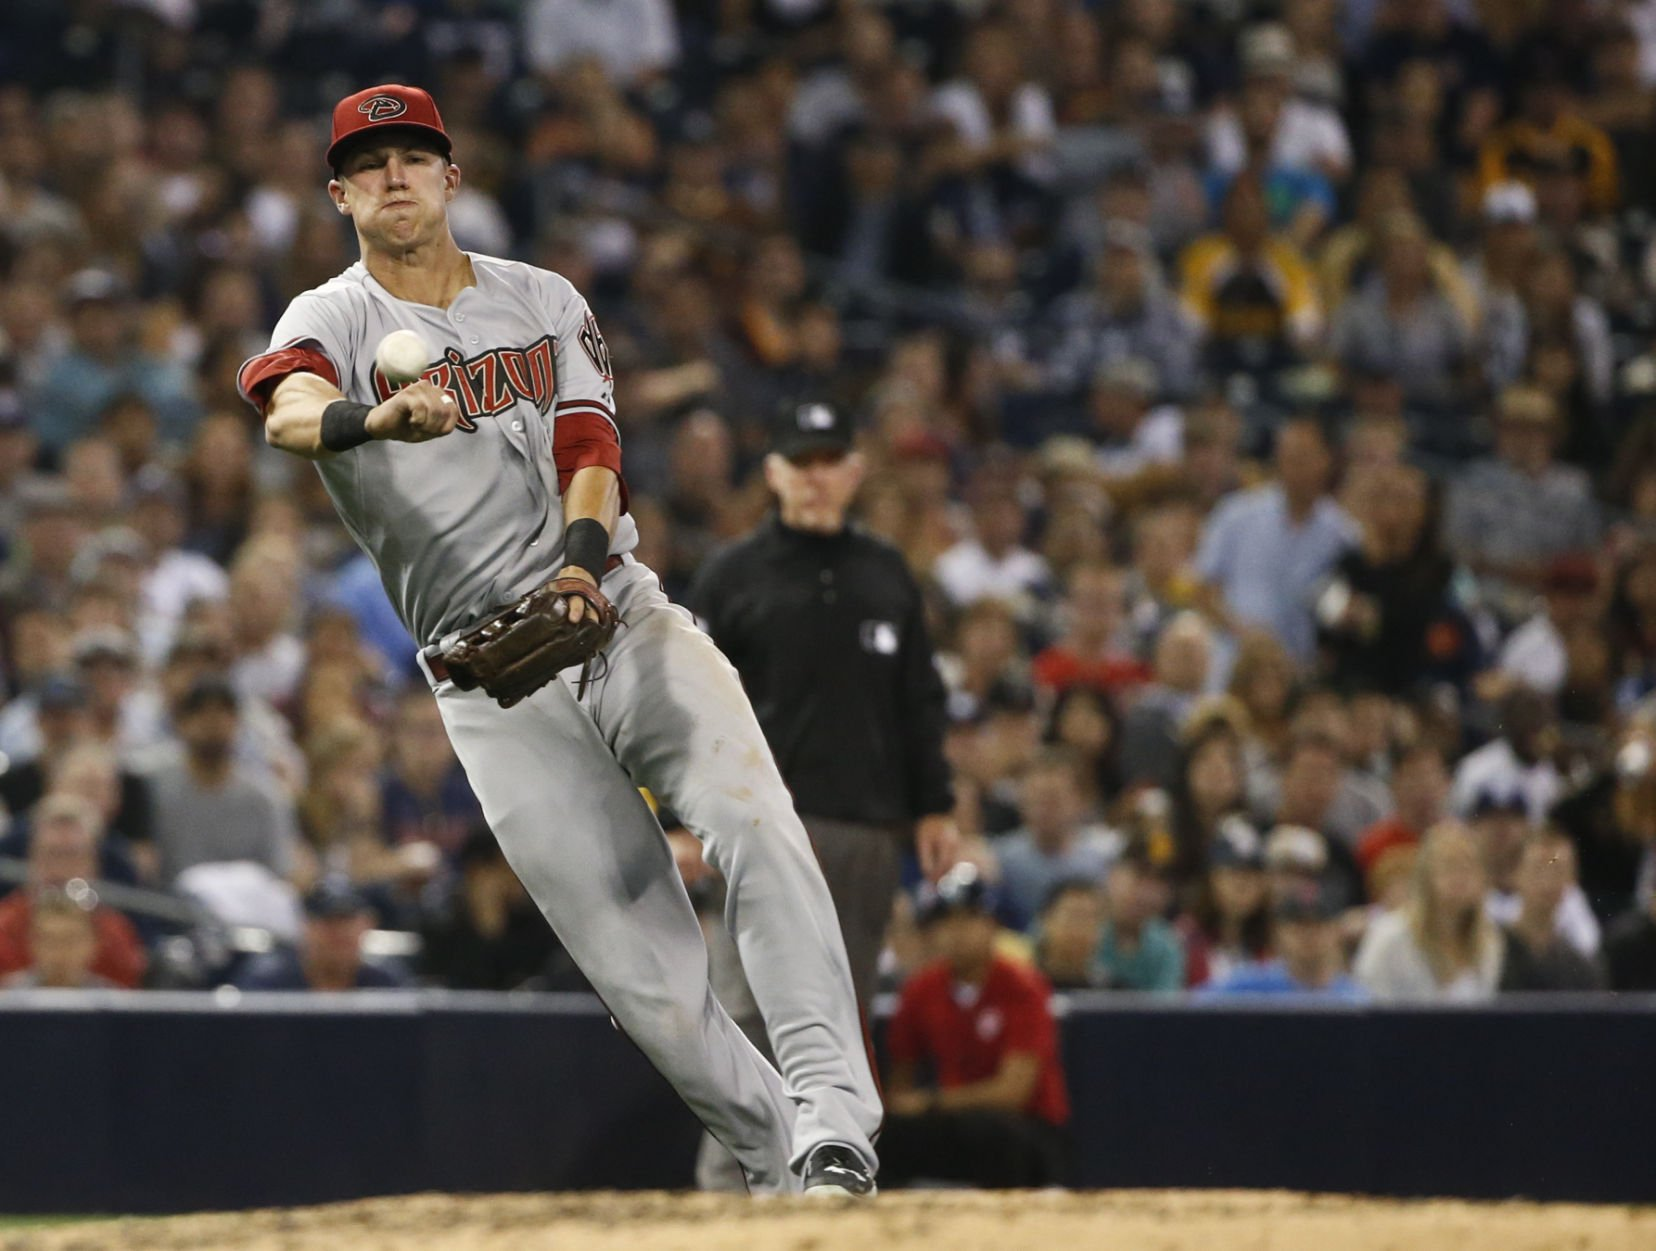 D-backs fall to Padres 4-2